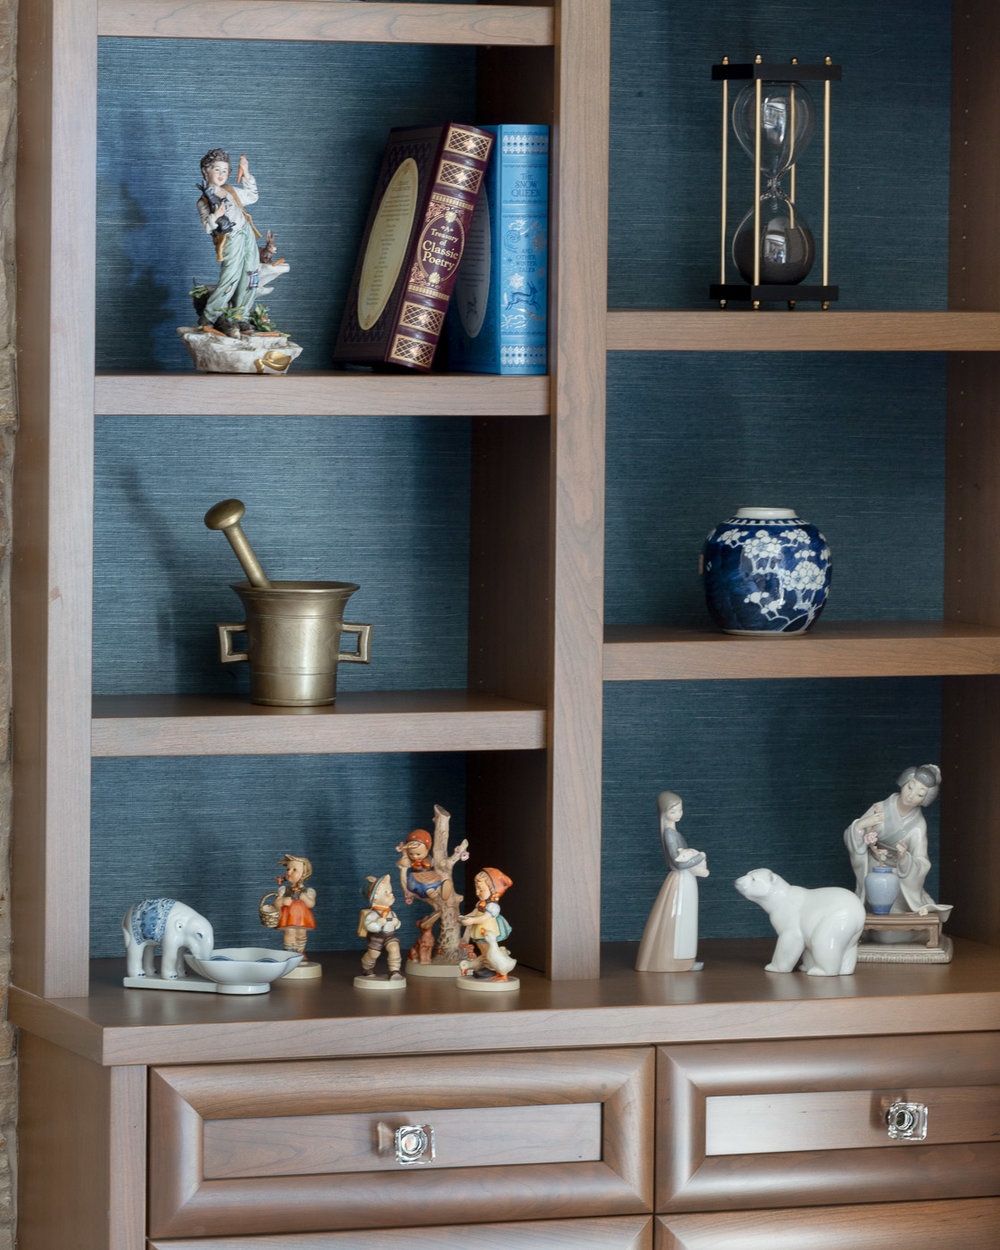 Deep blue textured grass cloth accents bookshelves with cherished figurine collections.